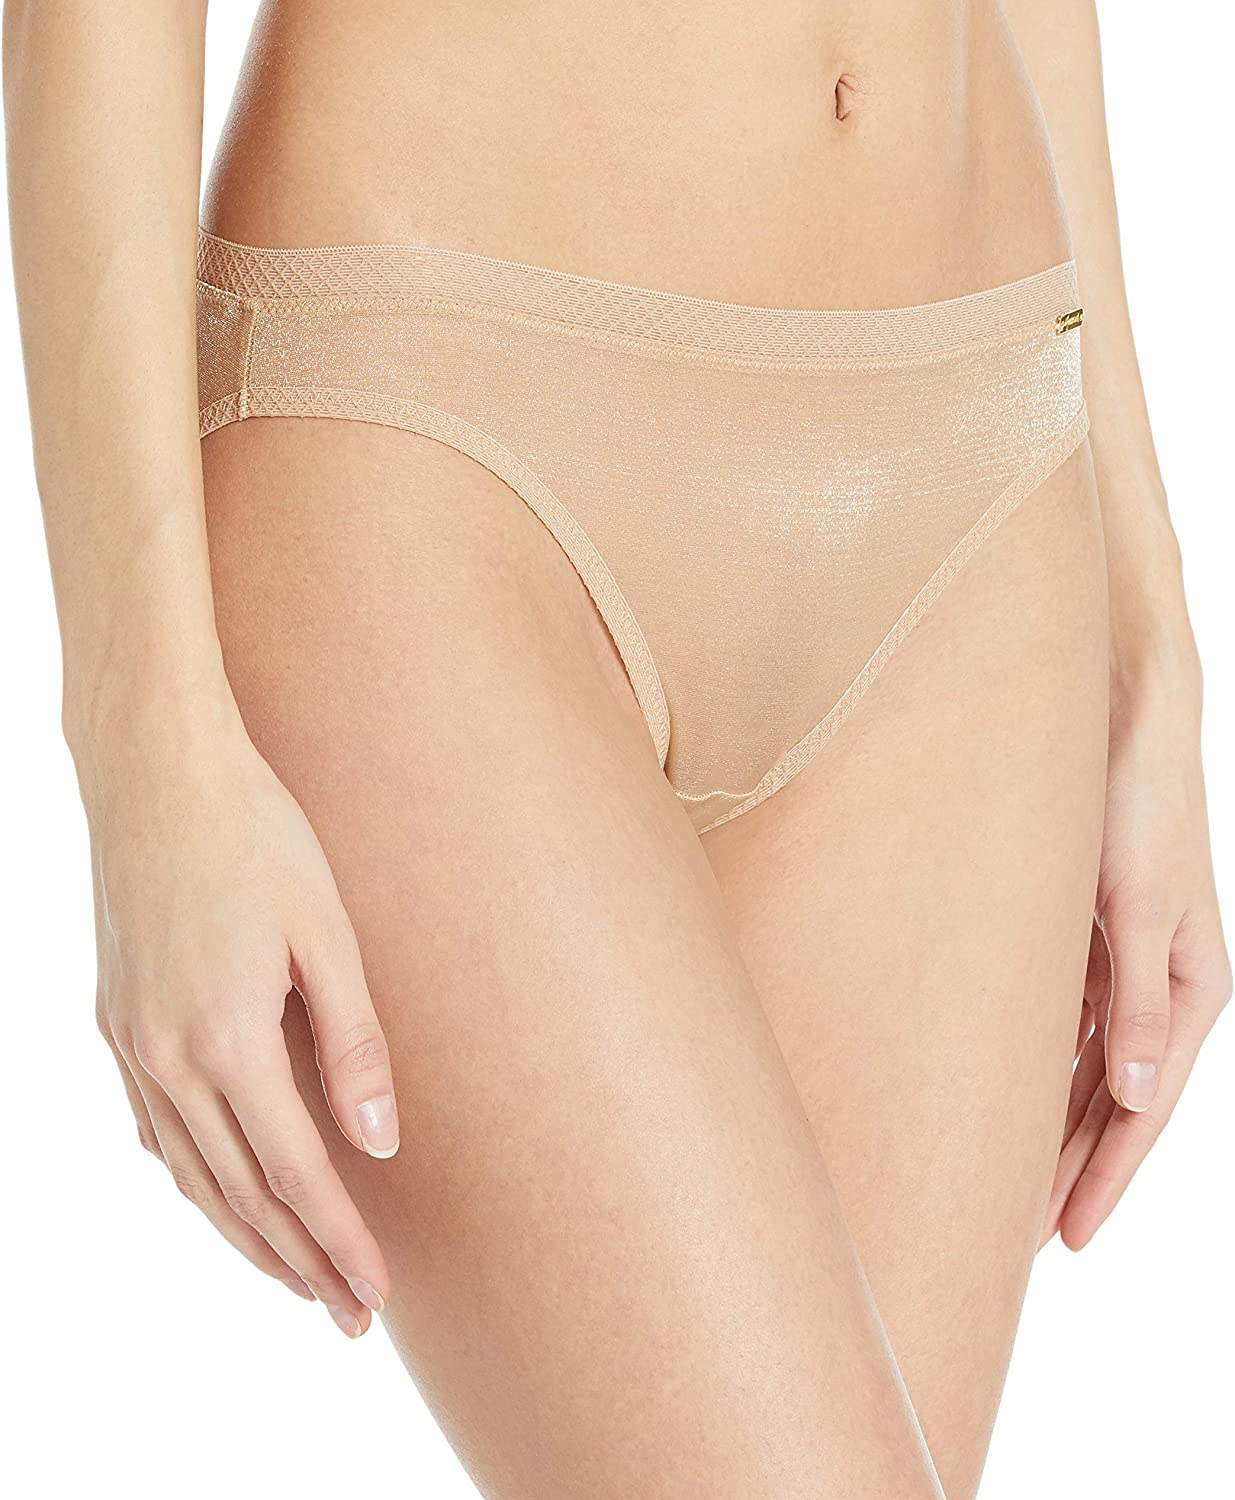 Gossard Women's Glossies Brief Quality inspection Max 60% OFF